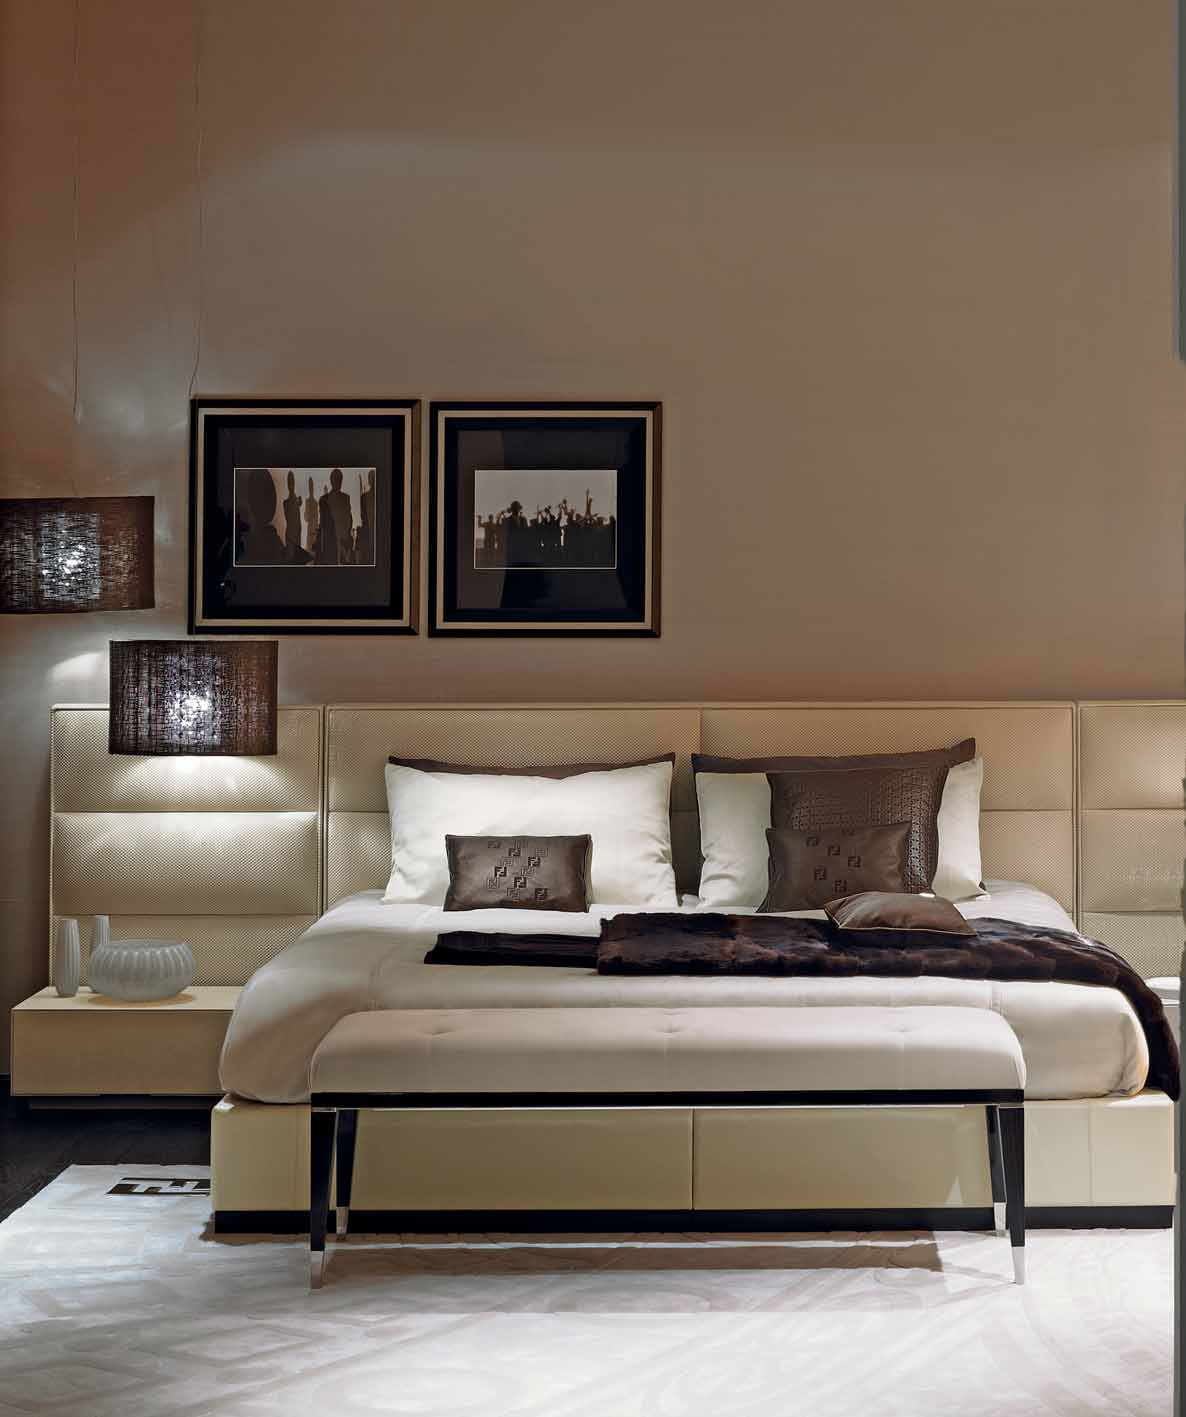 Double Urano 2 Bed With High Upholstered Headboard Fendi